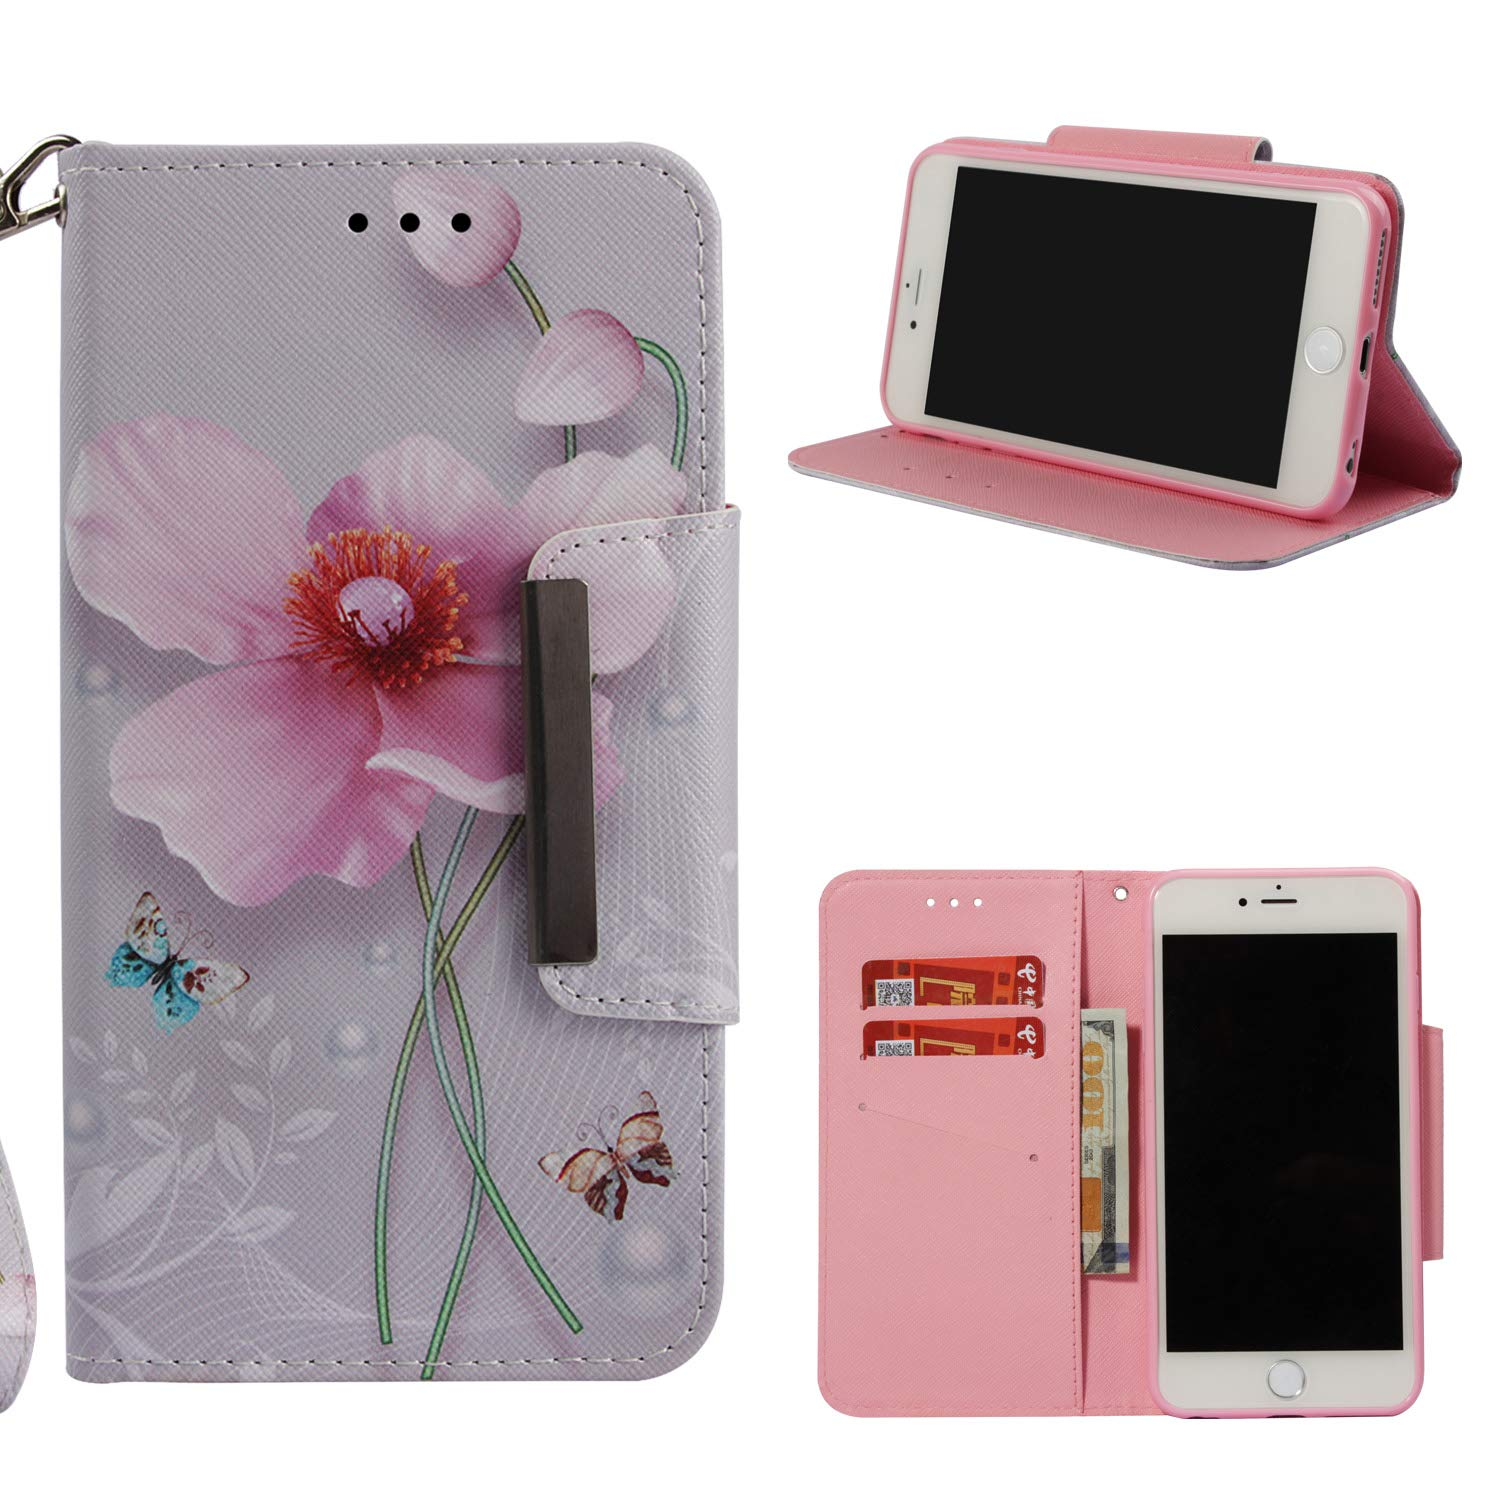 Leather Wallet Case for iPhone 6S Plus/iPhone 6 Plus,Shinyzone Colorful Flower Painted Pattern Flip Stand Case,Wristlet & Metal Magnetic Closure Protective Cover